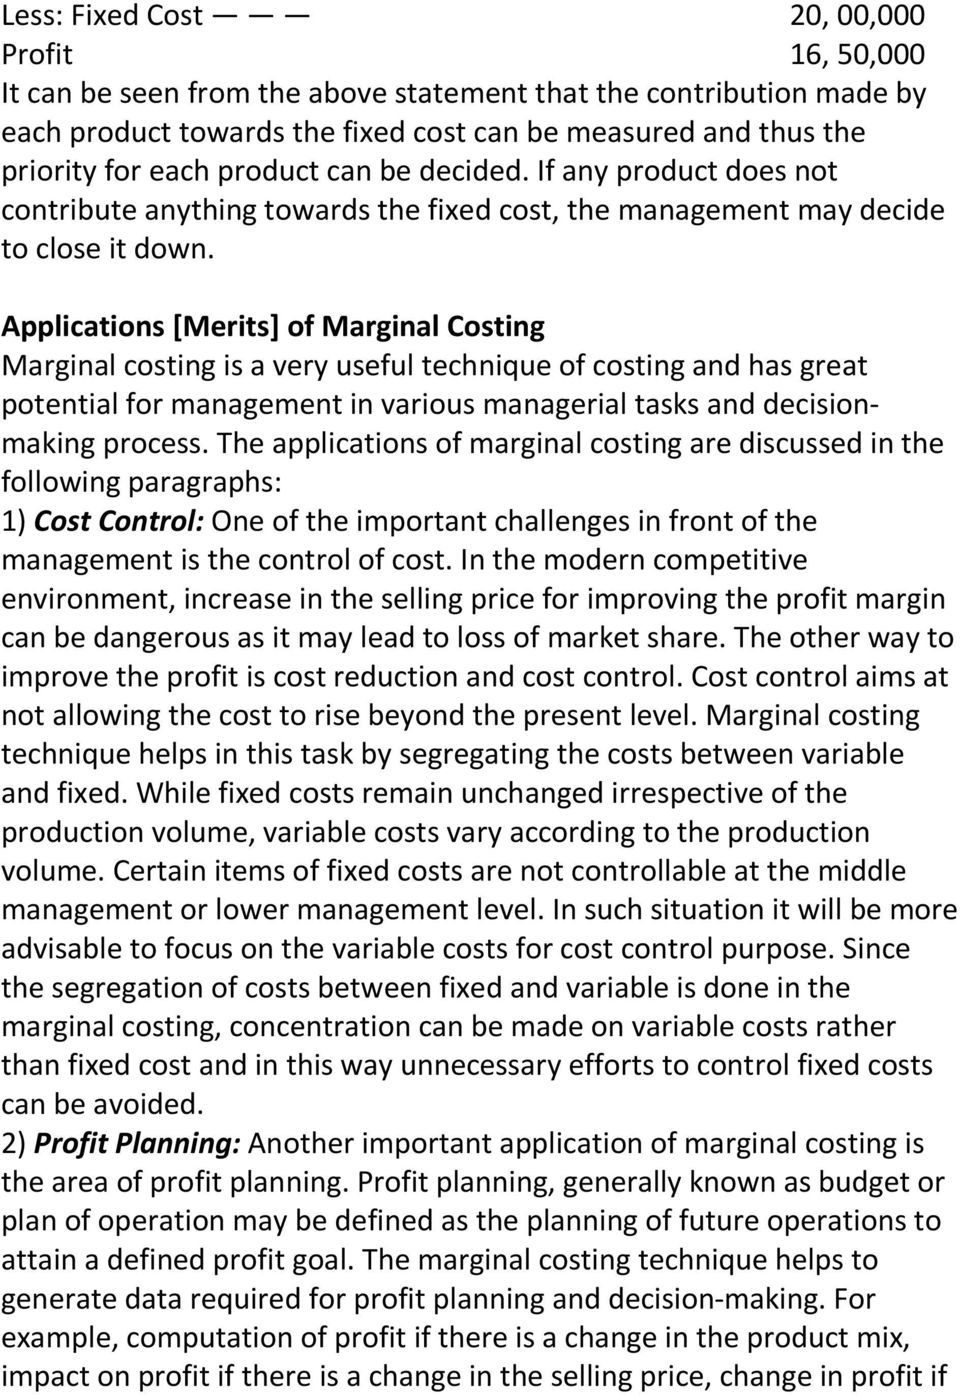 Applications [Merits] of Marginal Costing Marginal costing is a very useful technique of costing and has great potential for management in various managerial tasks and decisionmaking process.